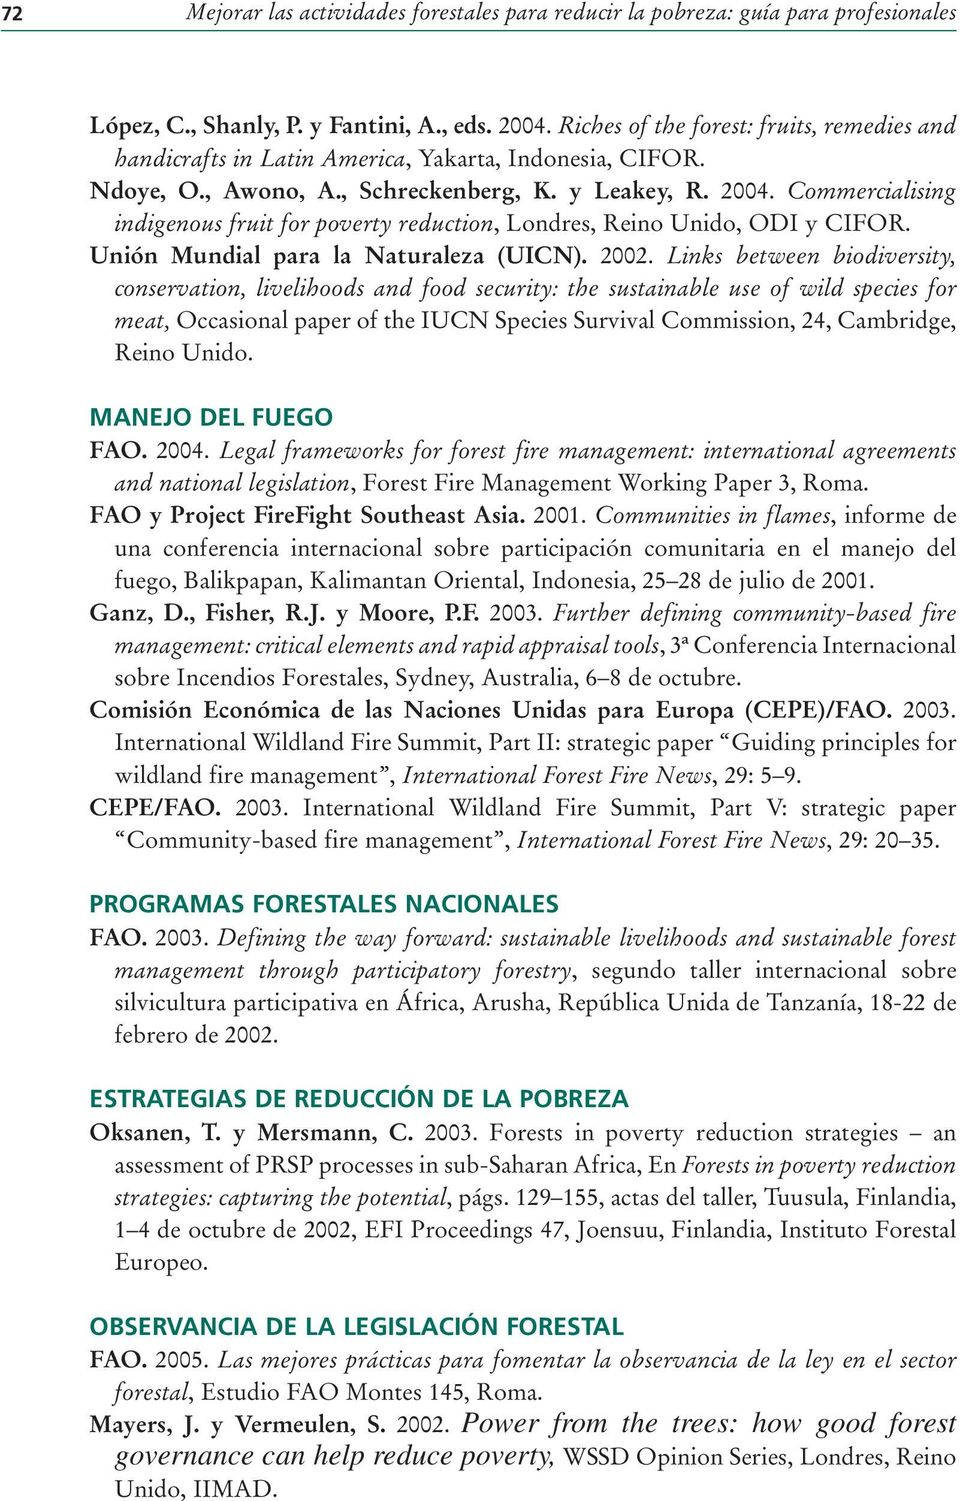 Commercialising indigenous fruit for poverty reduction, Londres, Reino Unido, ODI y CIFOR. Unión Mundial para la Naturaleza (UICN). 2002.